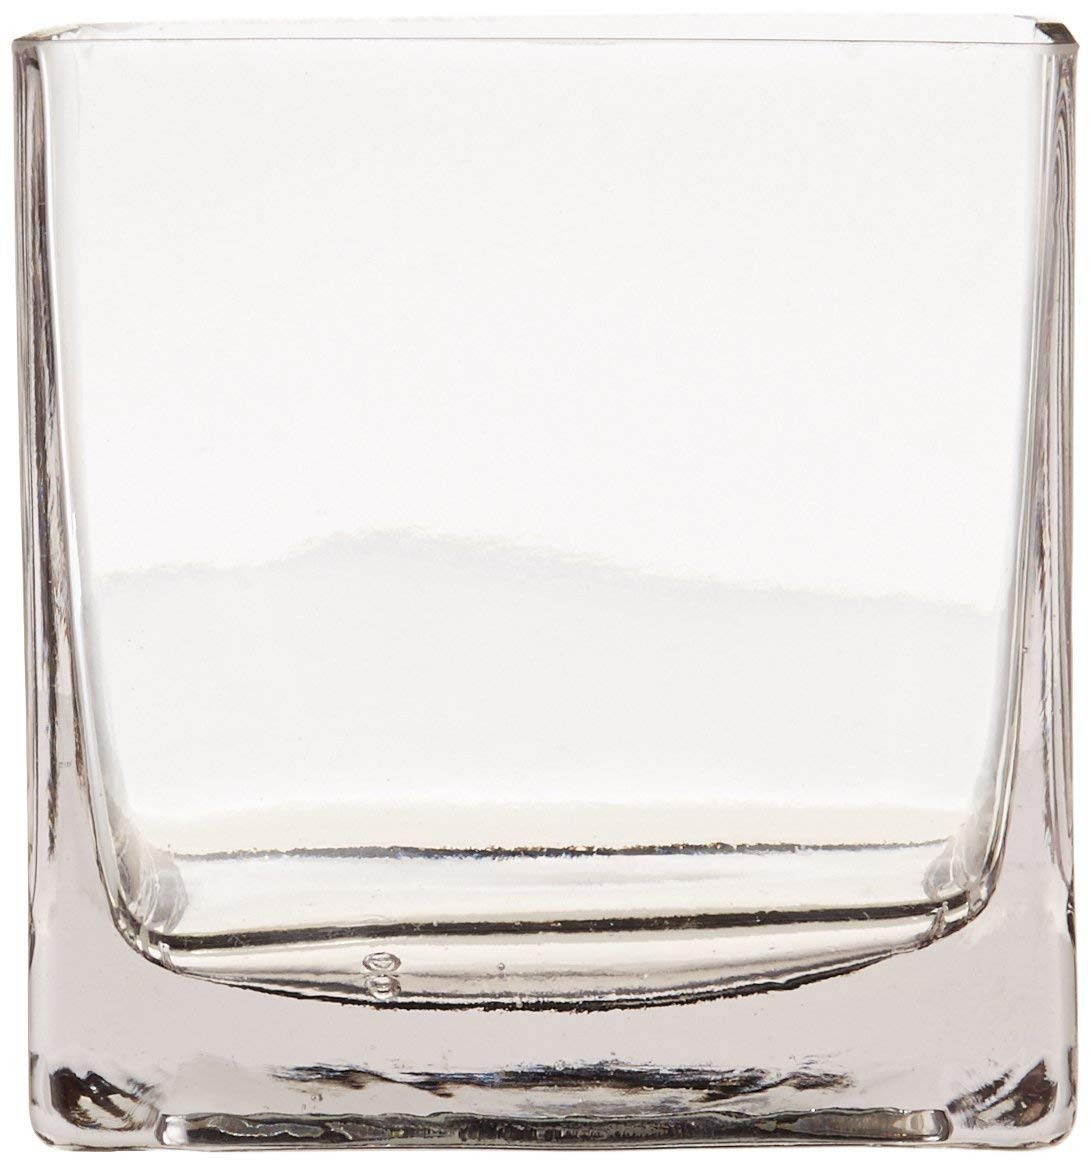 20 inch clear glass vase of amazon com 12piece 4 square crystal clear glass vase home kitchen in 61odrrfbtgl sl1164